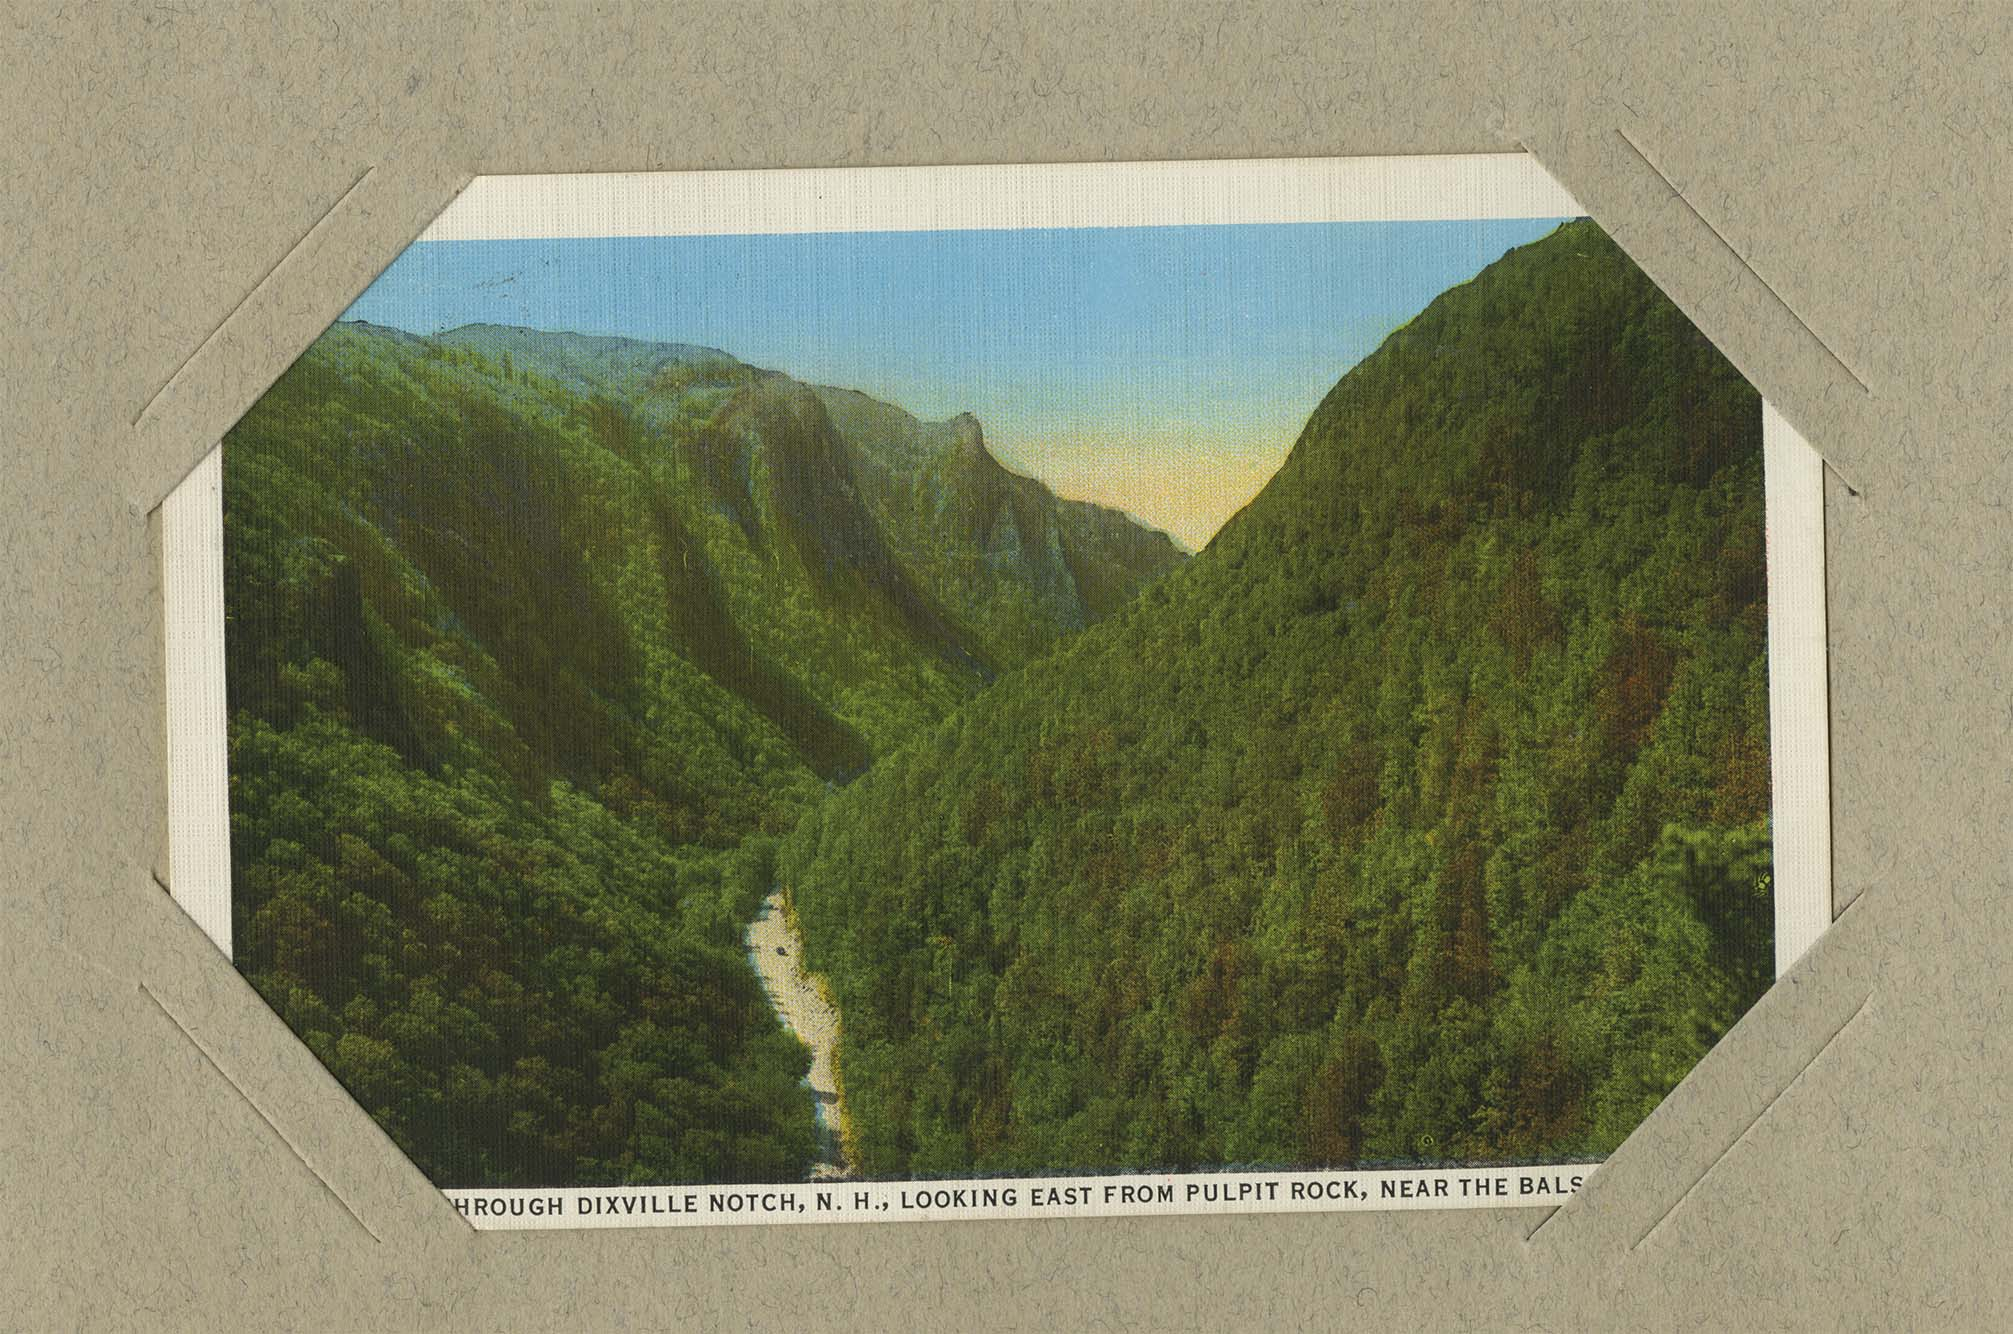 How to scrapbook on a mac - Postcard From Mac To Barbara Shields About Wilderness In New Hampshire